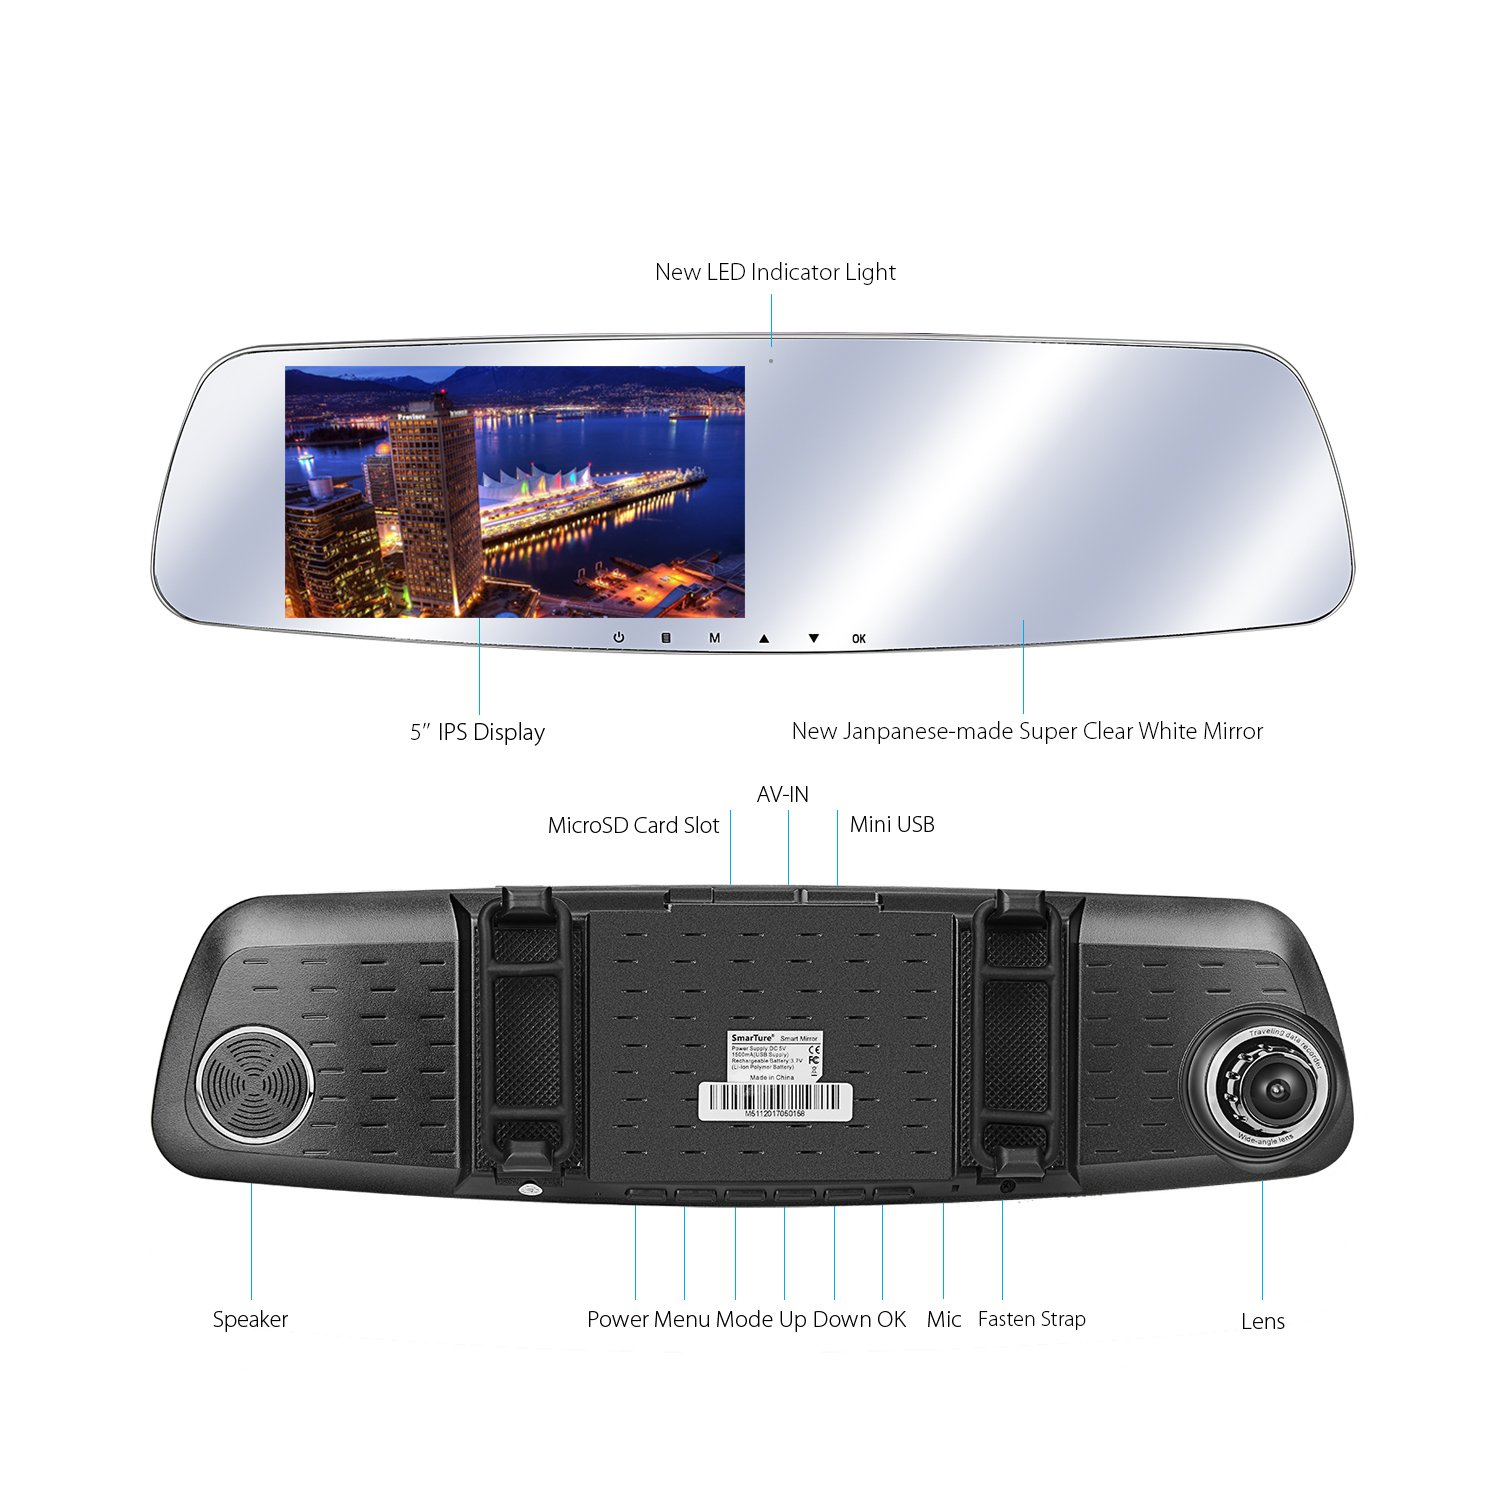 Reverse Assist 3rd Gen 5 IPS Screen M511 150 Degree Wide Angle Front Camera with Night Vision 5 IPS Screen SmarTure 1296P Rear View Mirror Dash Cam with Backup Camera Parking Protection,Two Channels Recording